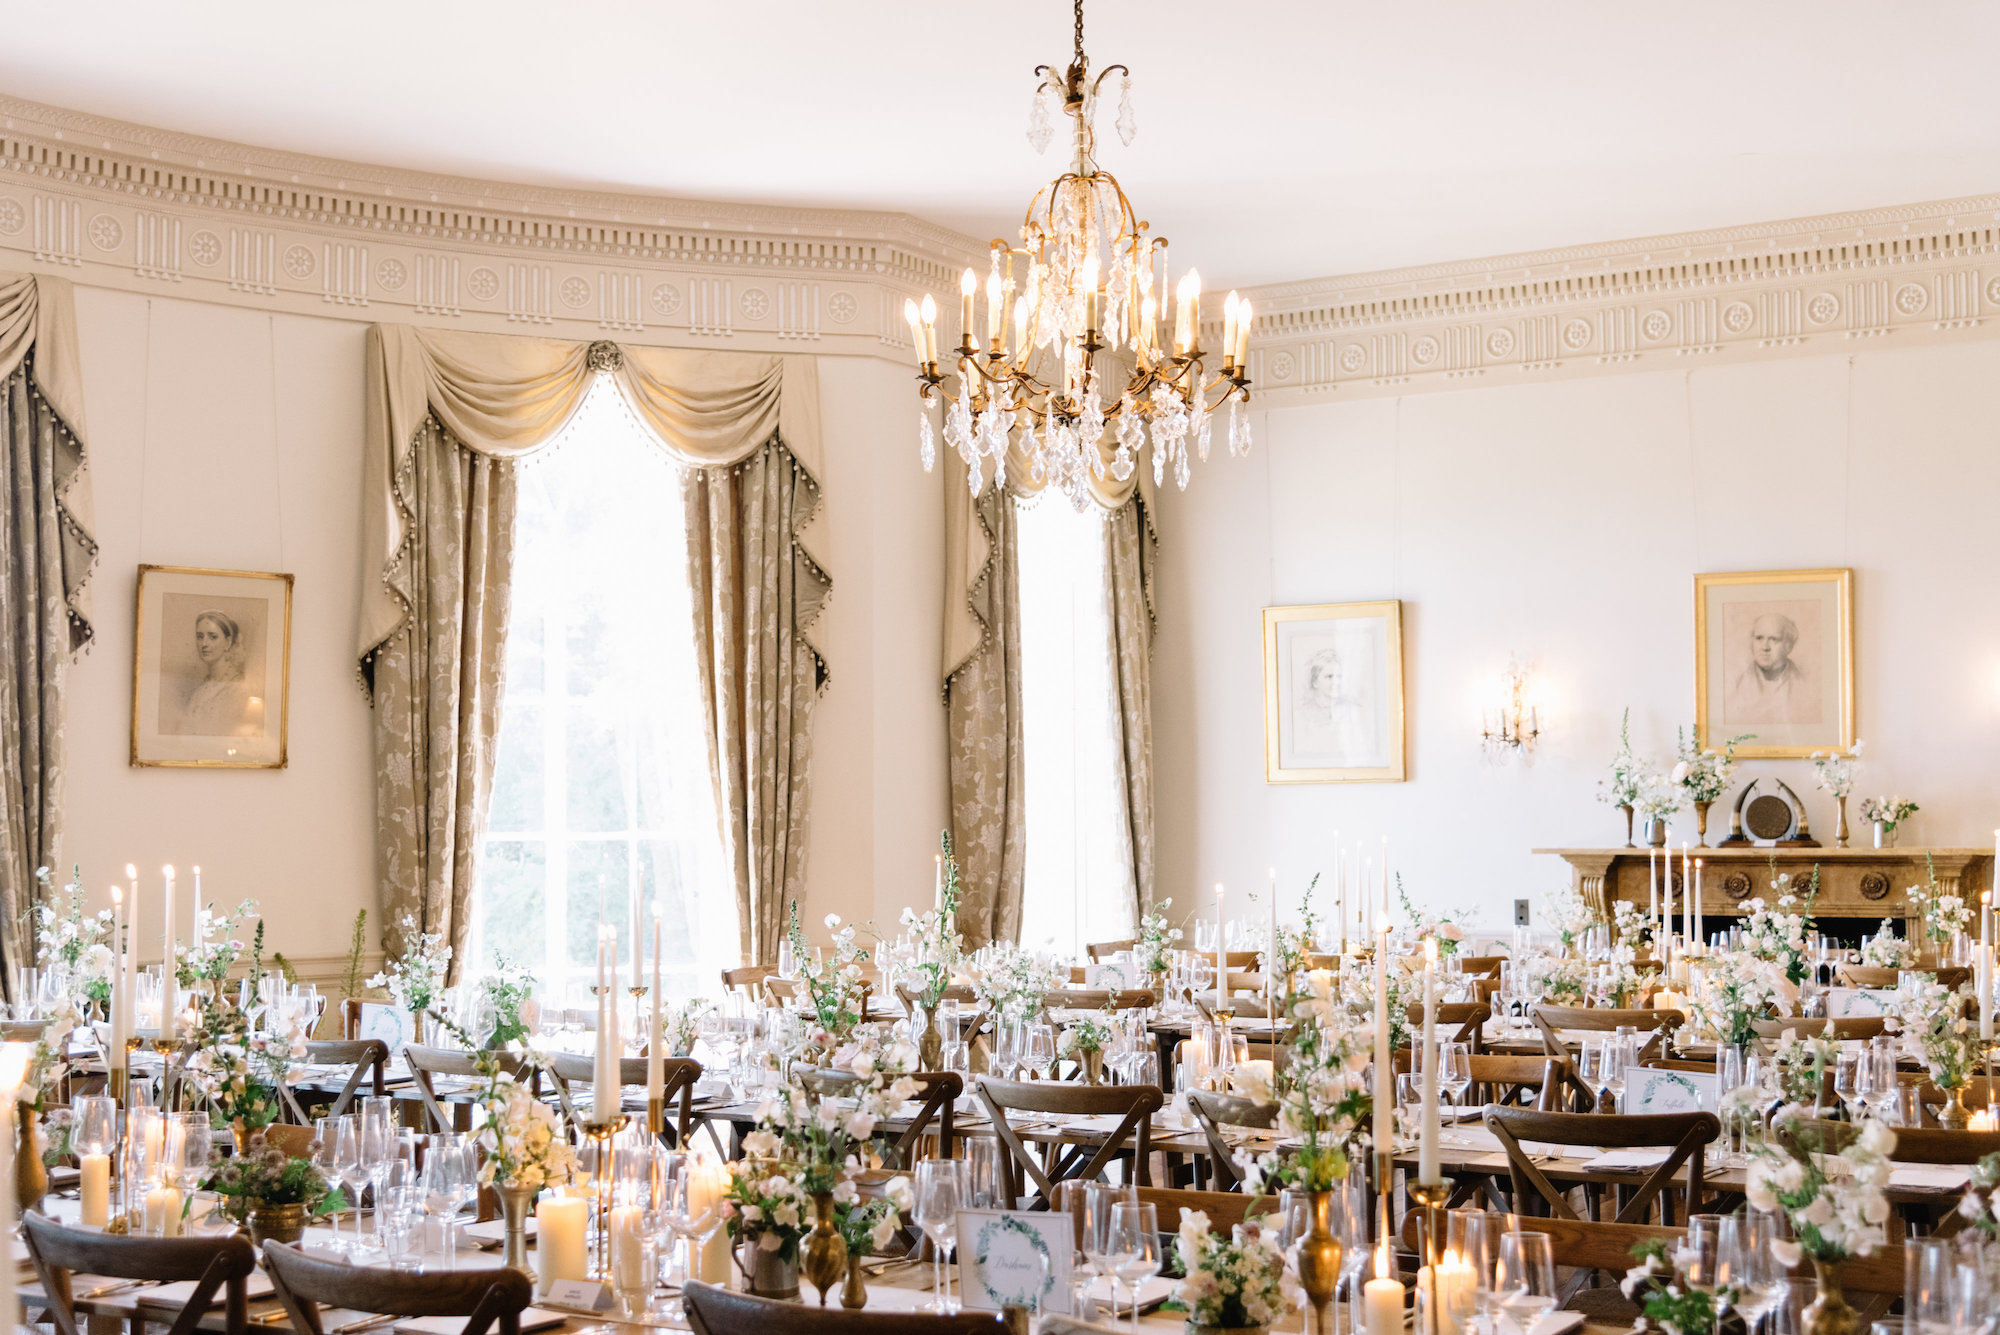 Luxury Wedding Planner UK | Jennifer & Timothy's English Country Manor Wedding | Soft Pink Pale Blue White and Silver Toned Green Neutral Tones American Bride North Cadbury Court | Nicole Colwell Photography 1281.jpg